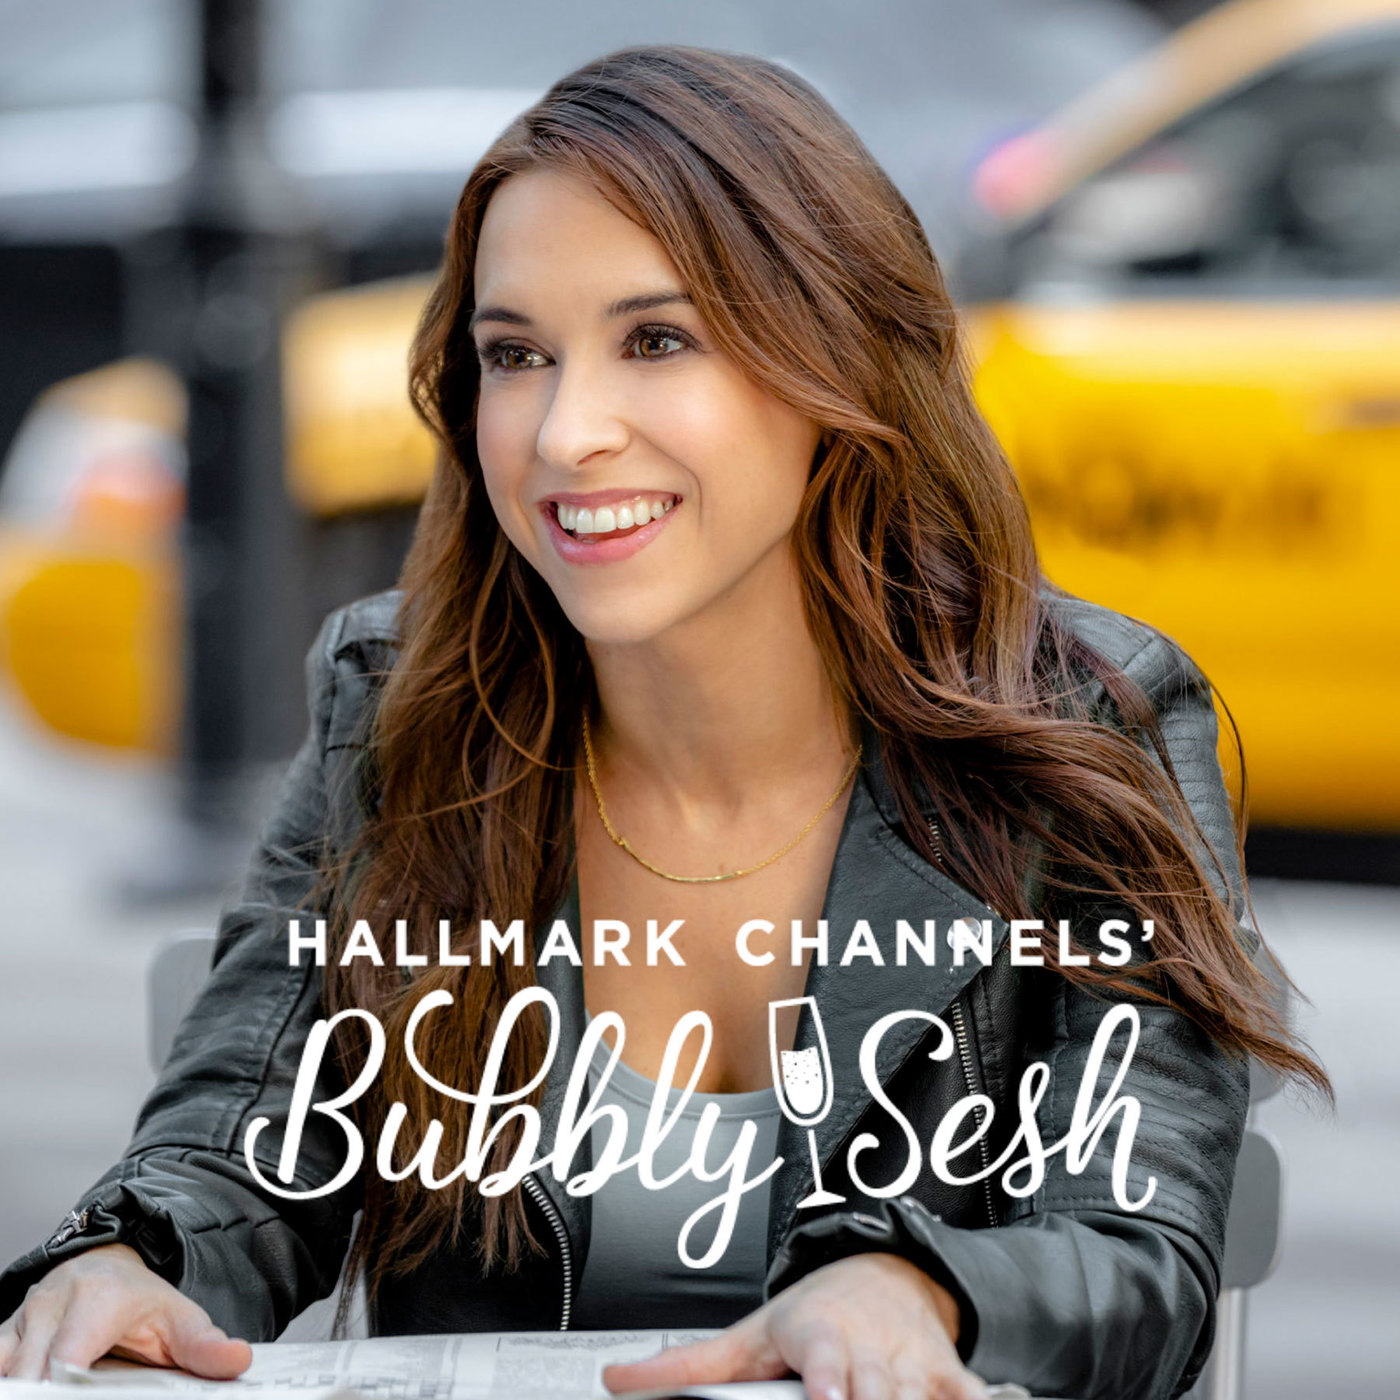 Hallmark Channel Star Lacey Chabert